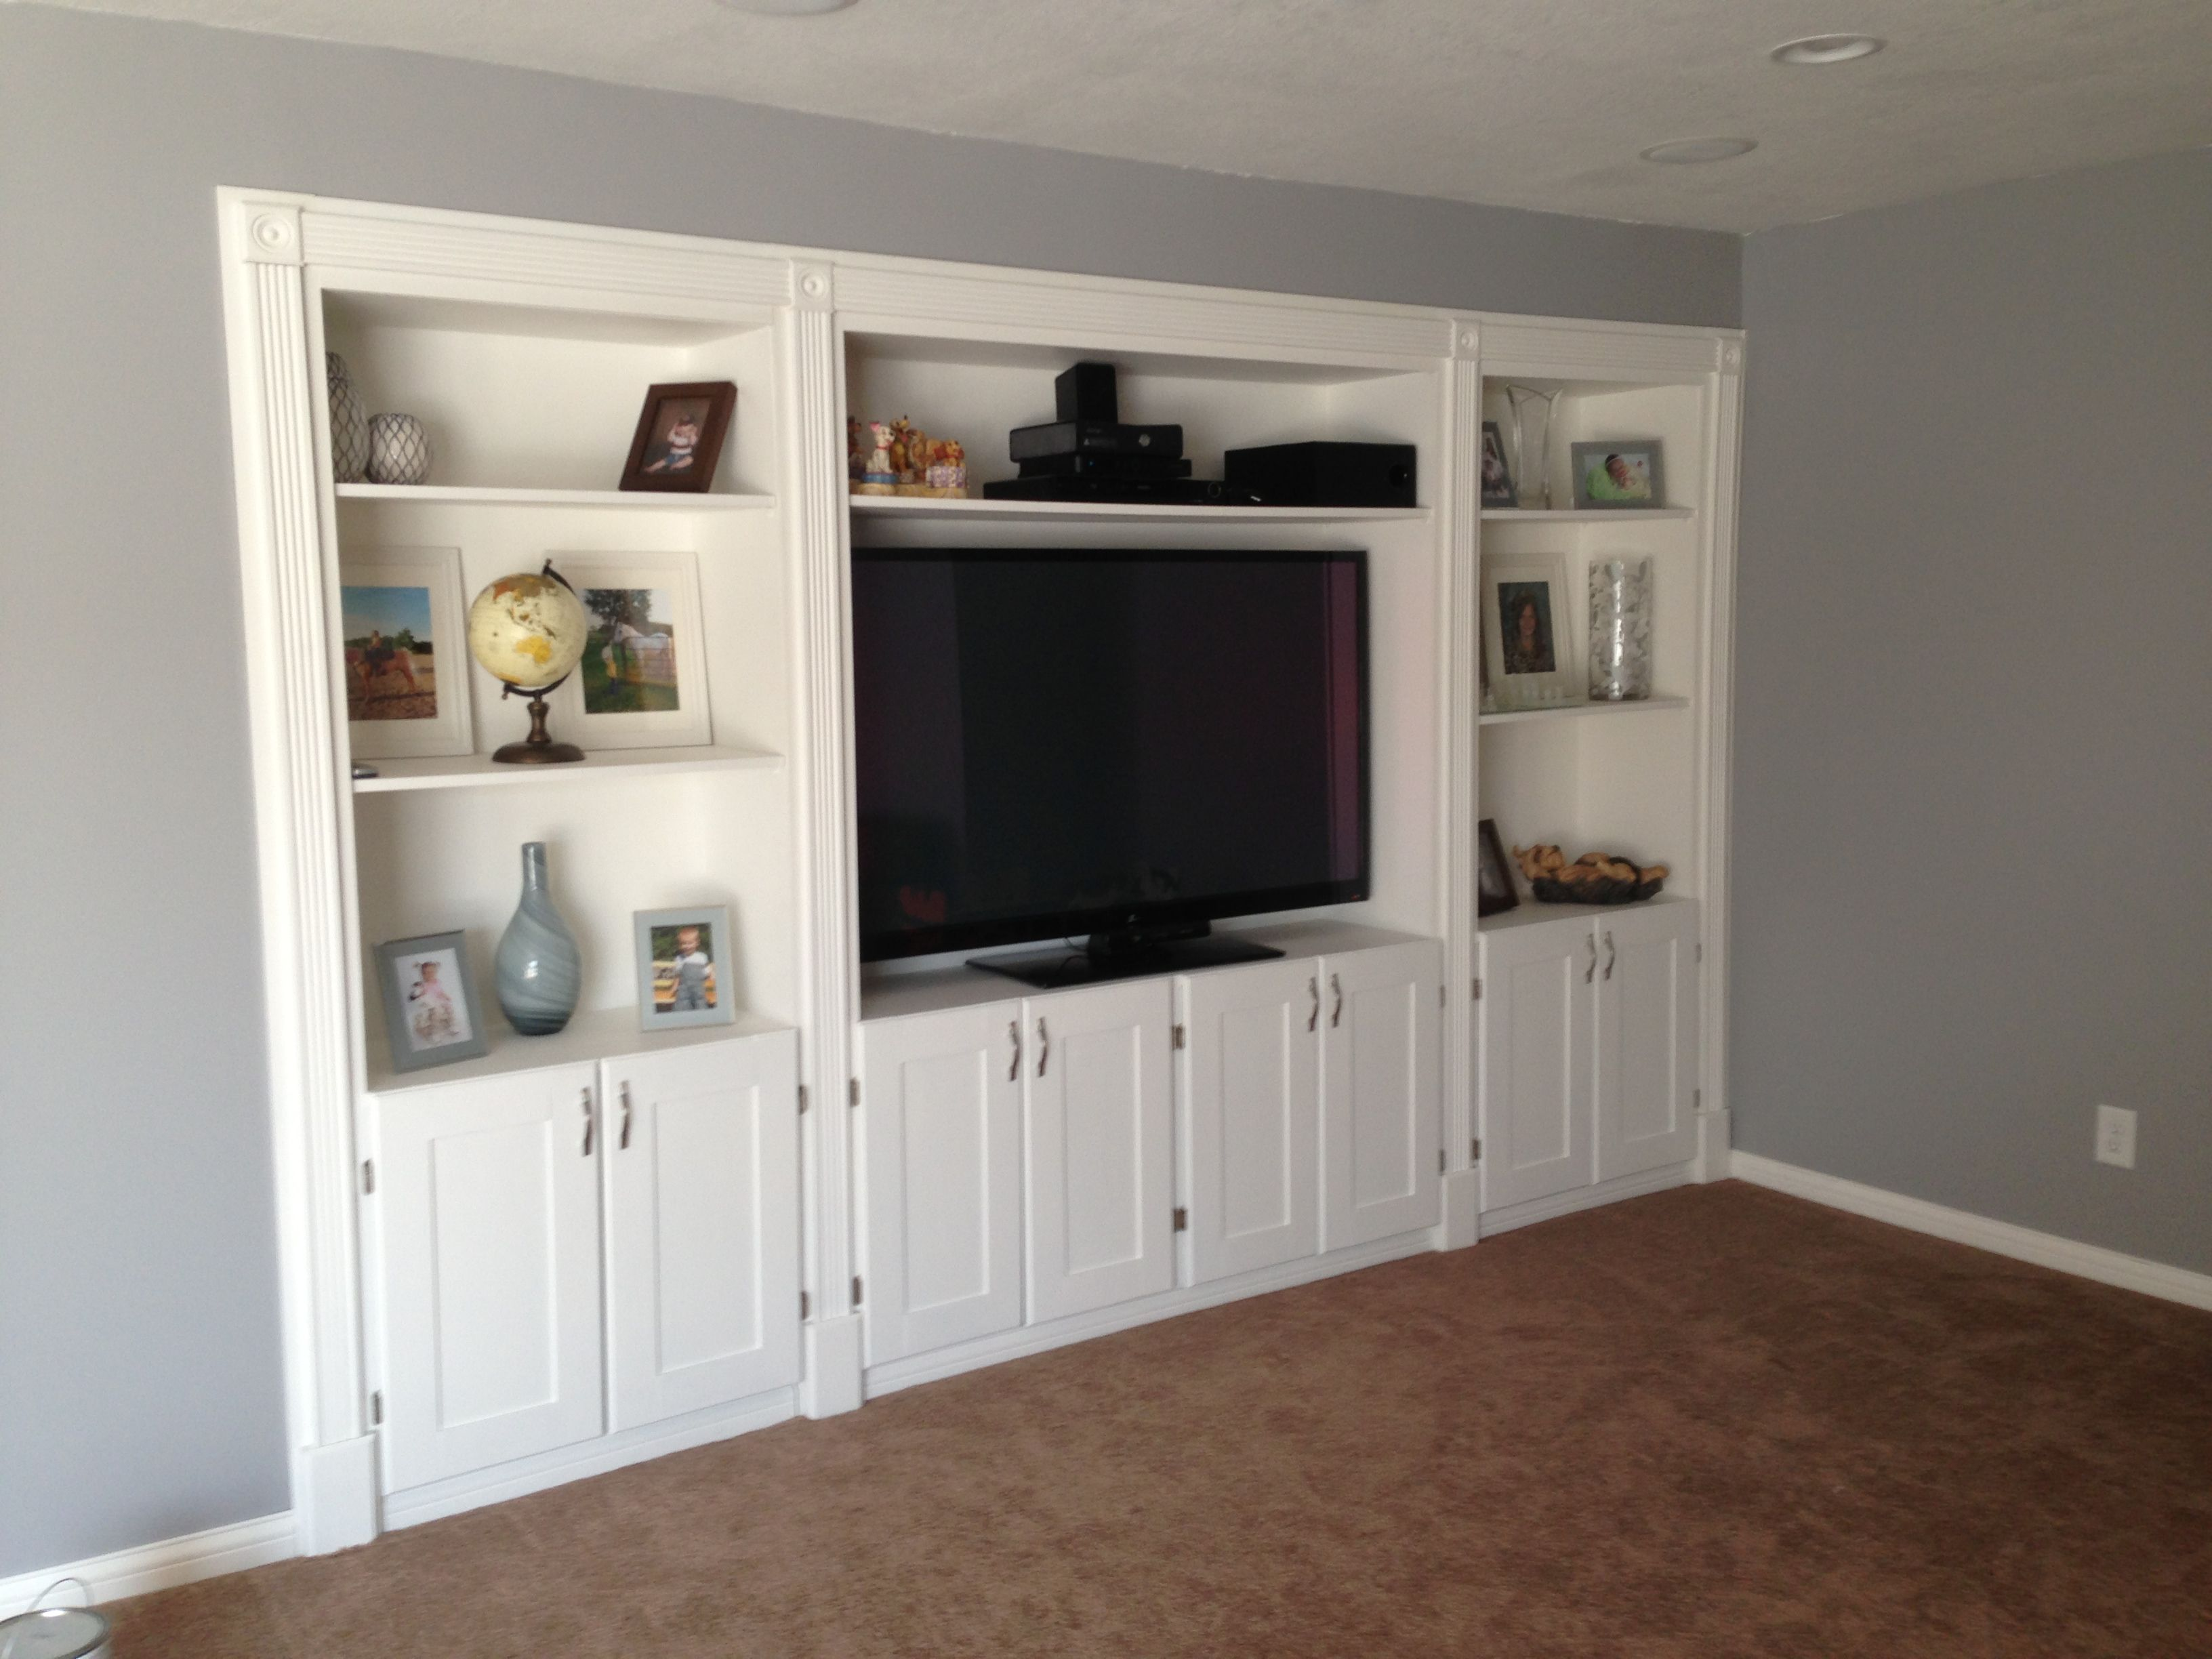 Built In Entertainment Center With A Secret Door Do You Know - Built in cabinets entertainment center design pictures remodel